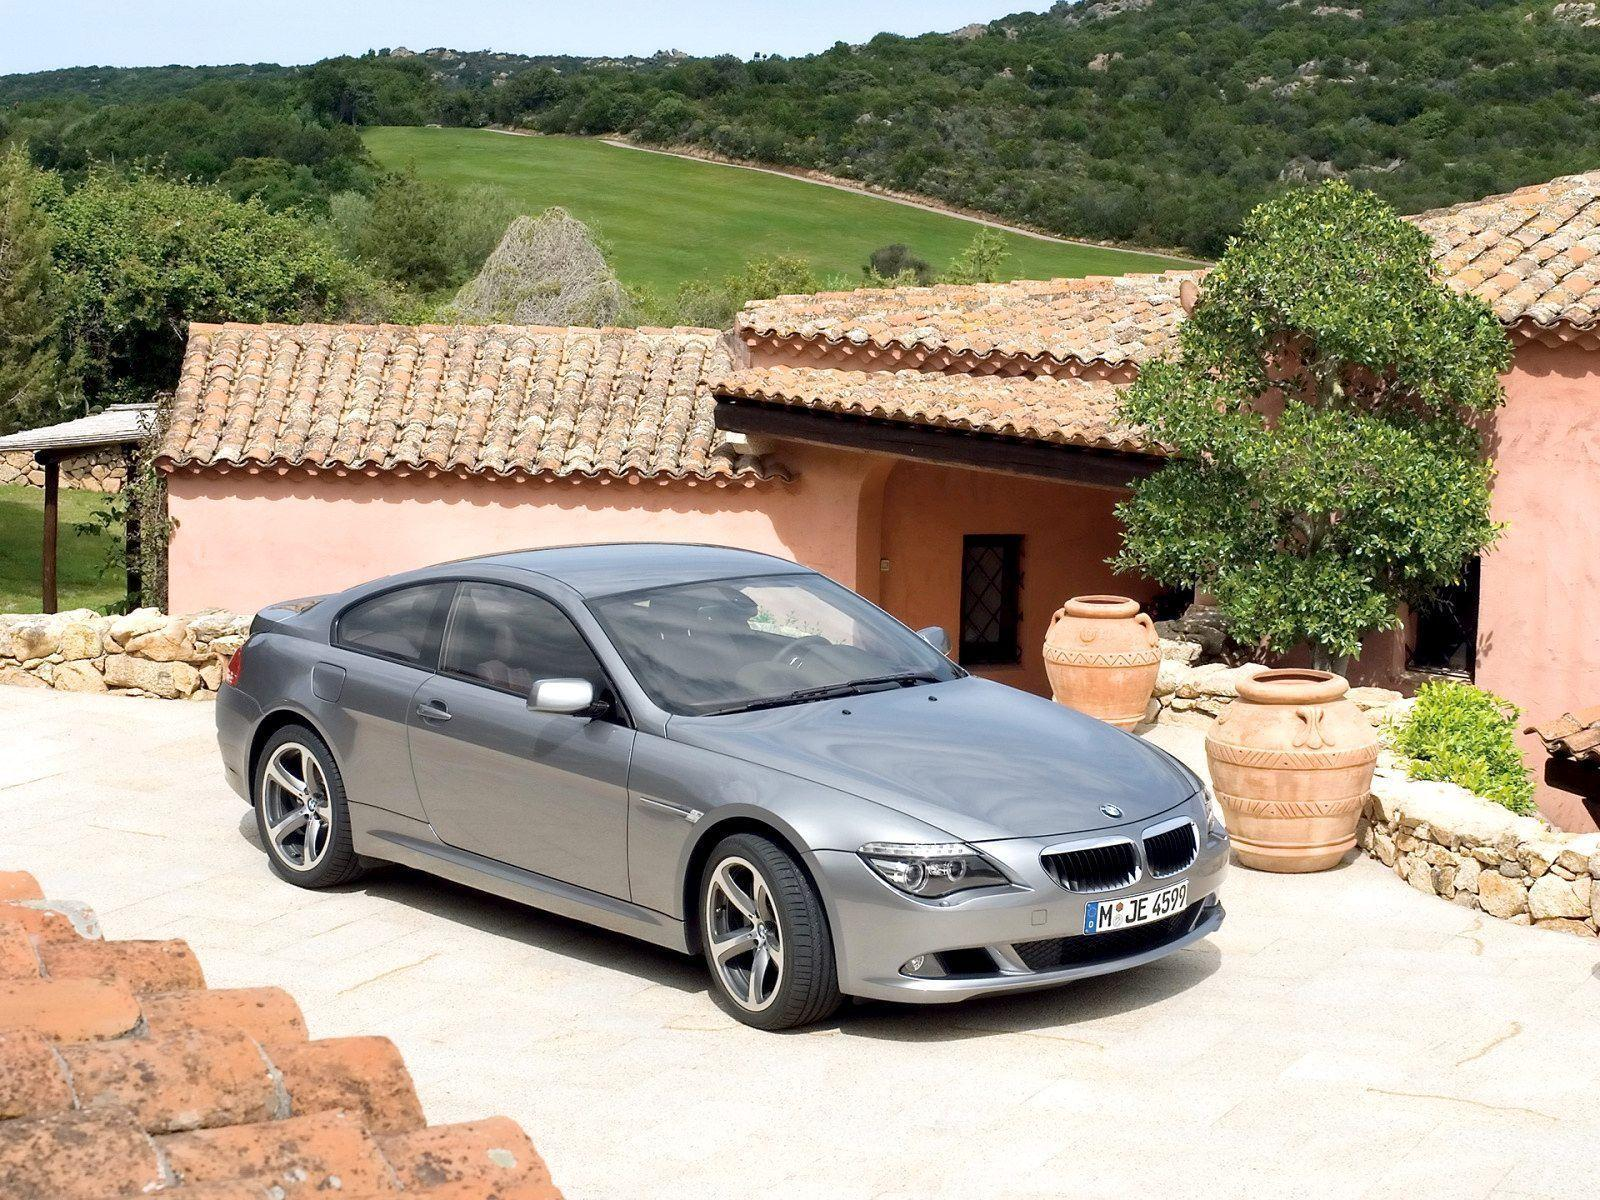 2008 BMW 6 Series Wallpaper 17 - 1600x1200